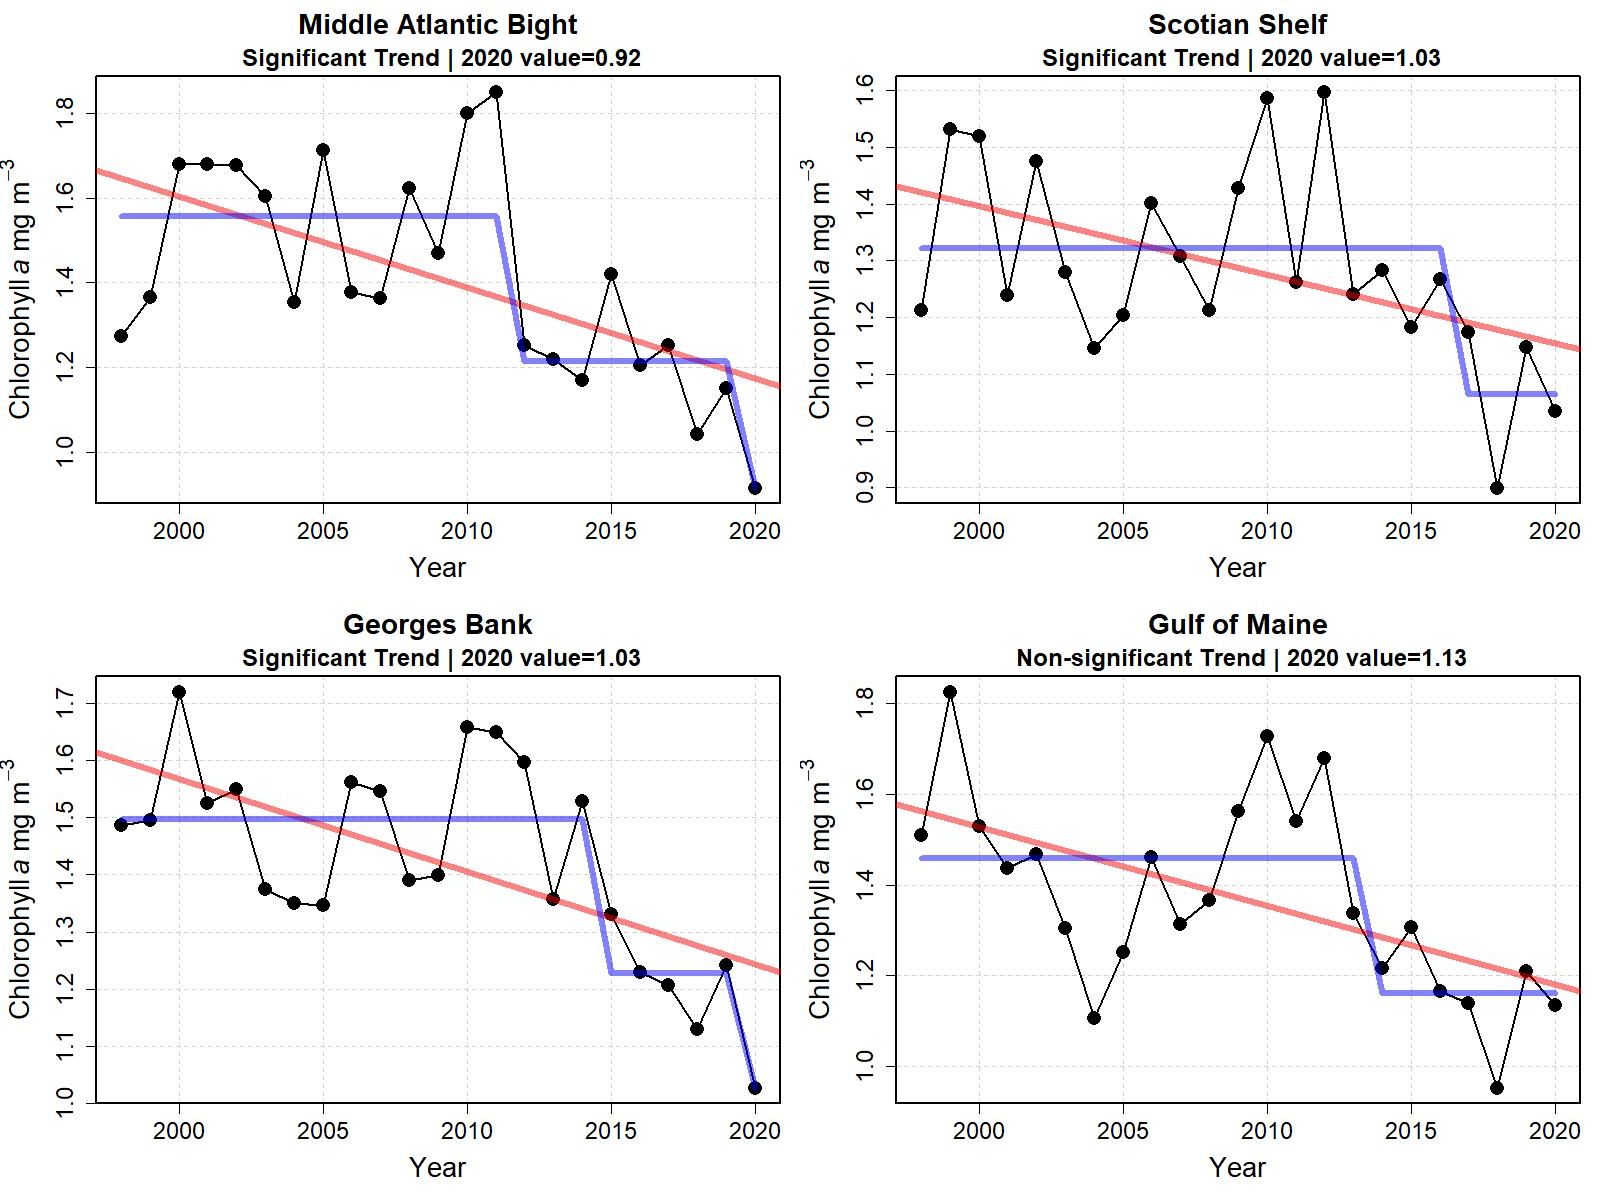 Graphs showing mean chlorophyll concentration for the last six months of the year from 1998 to 2020.  Top Row:  Middle Atlantic Bight and Georges Bank.  Bottom Row: Gulf of Maine and Scotian Shelf.